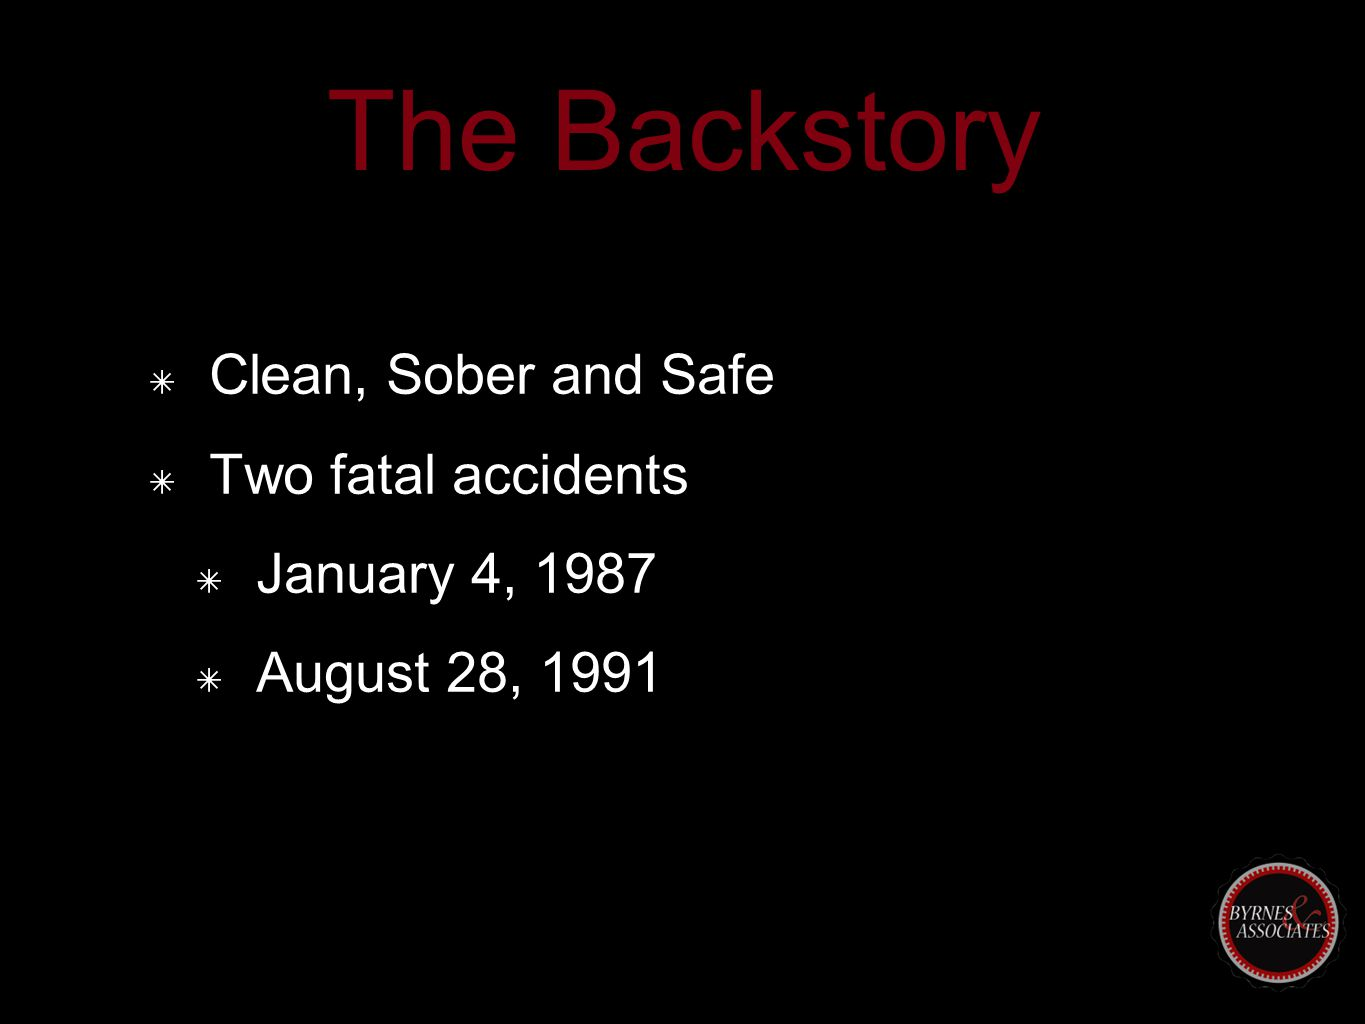 The Backstory ✴ Clean, Sober and Safe ✴ Two fatal accidents ✴ January 4, 1987 ✴ August 28, 1991